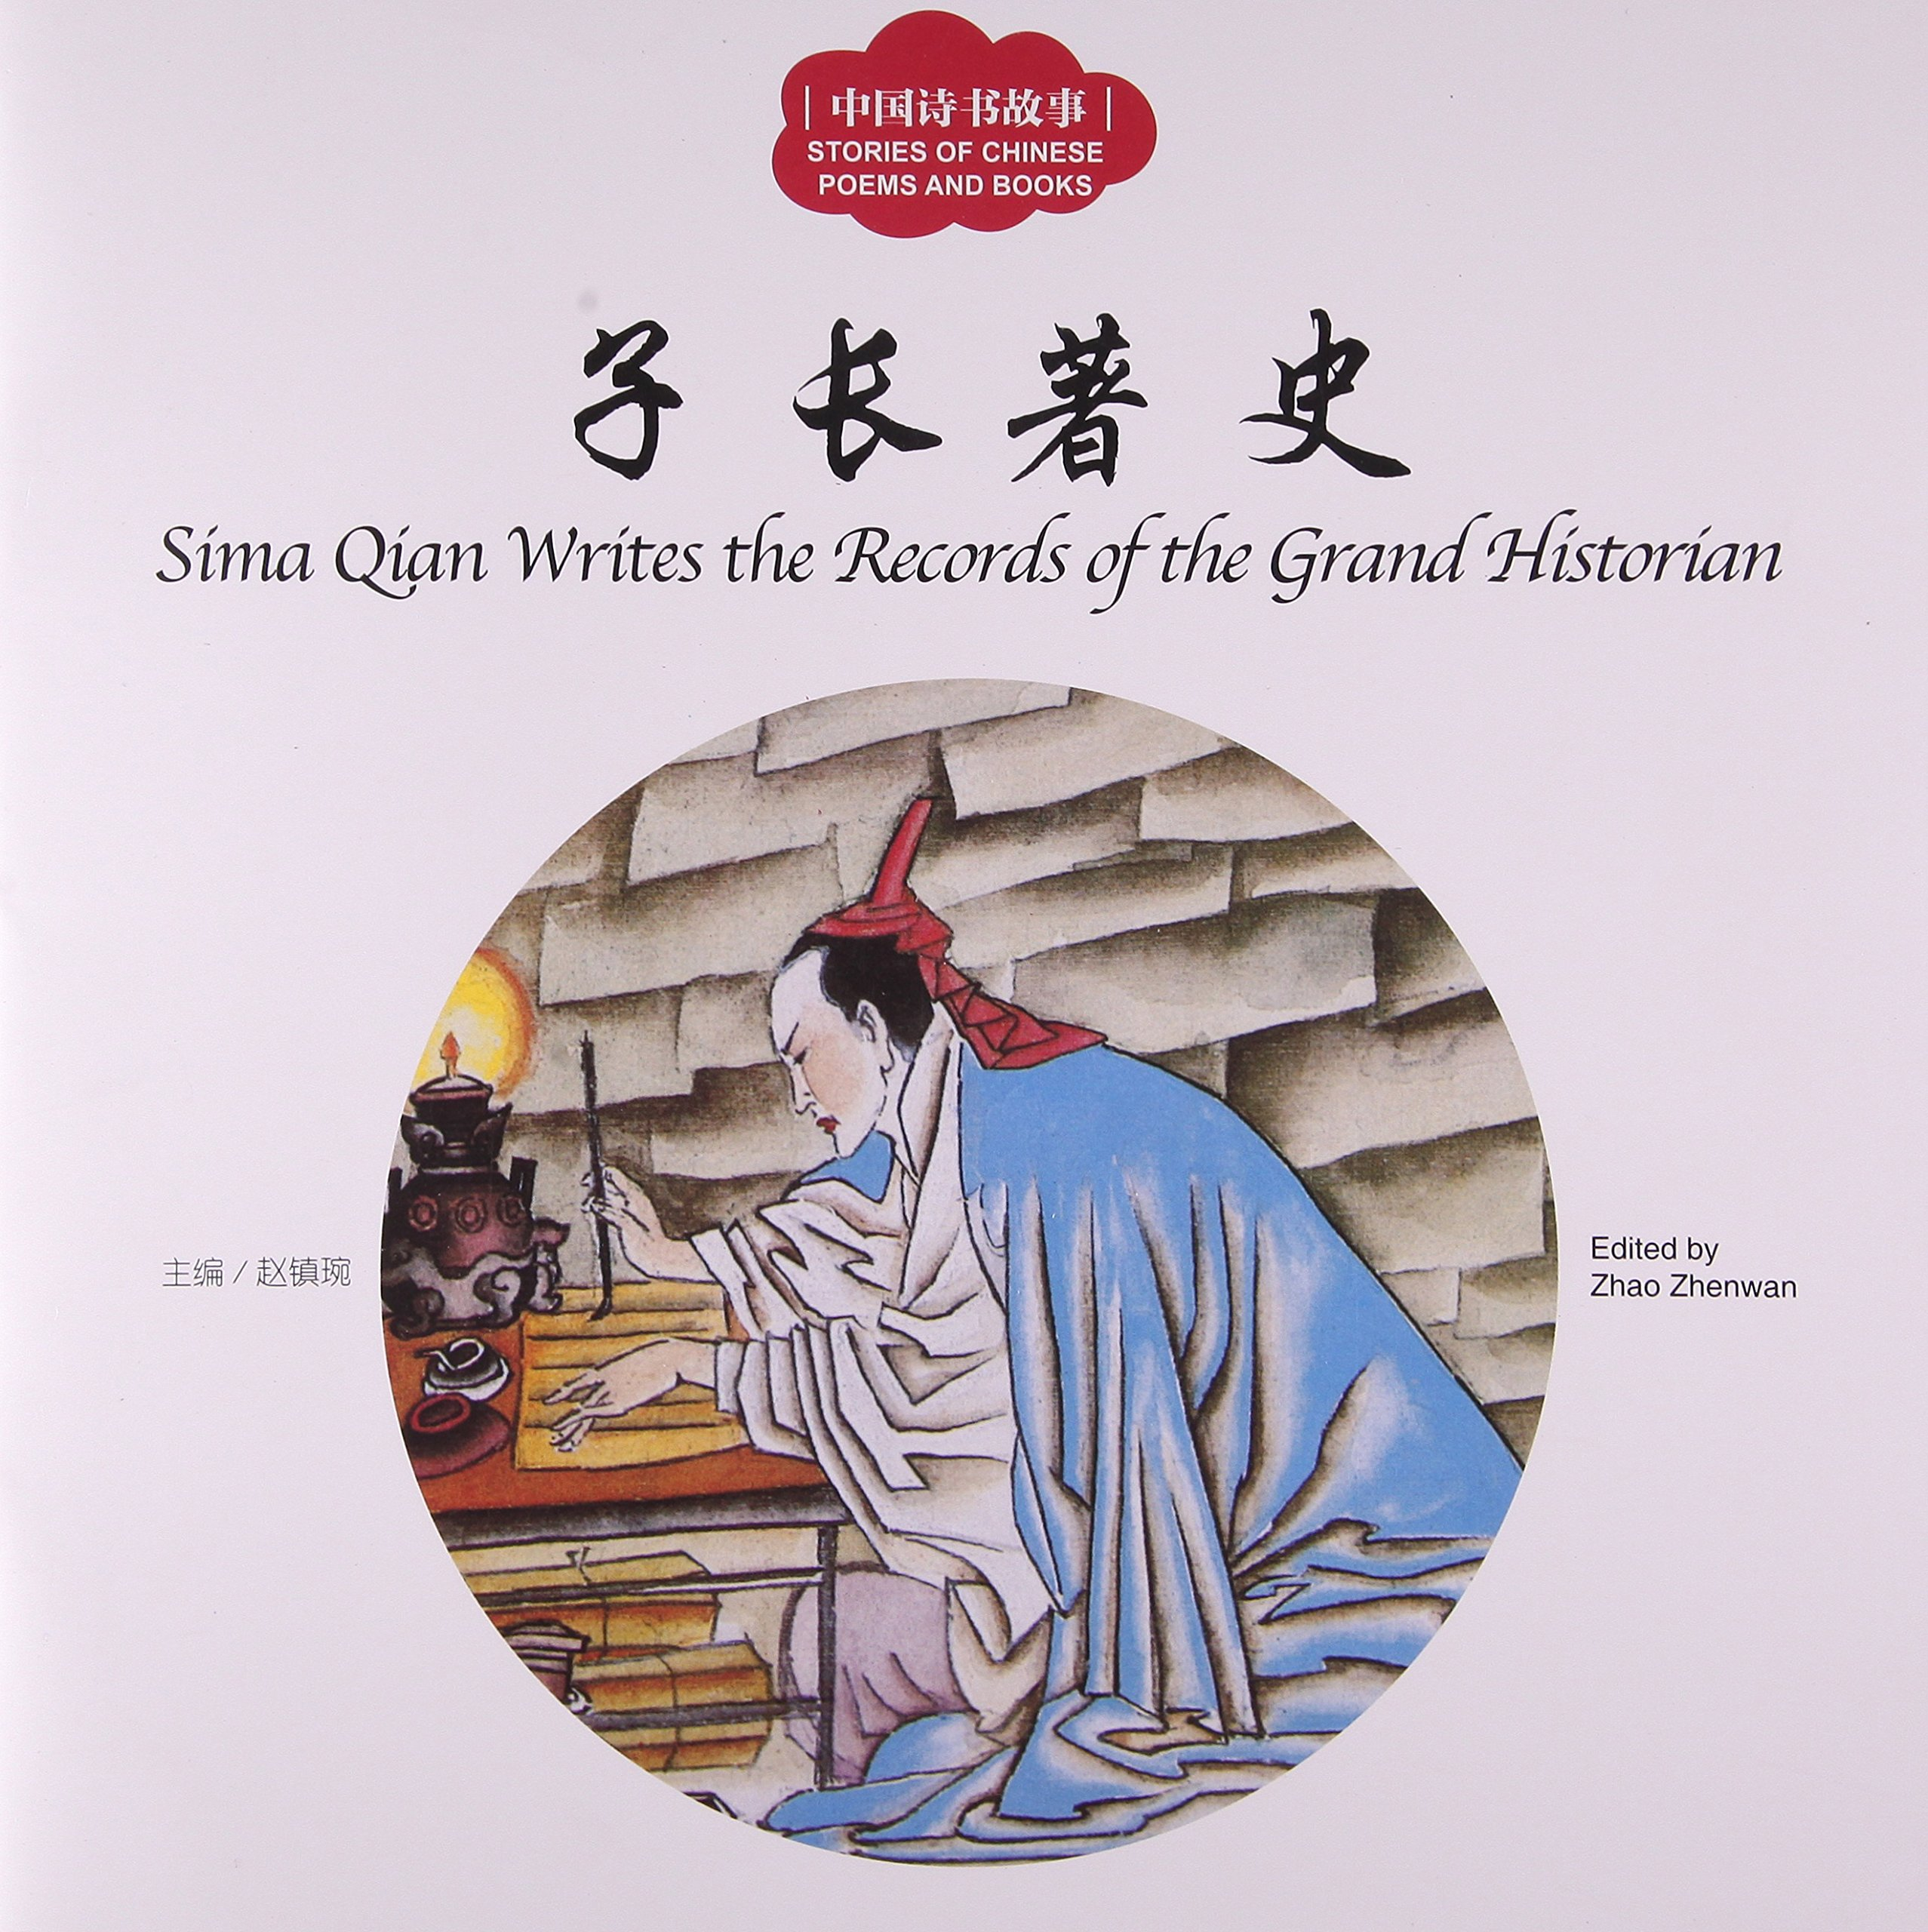 Sima Qian Writes the Records of the Grand Historian - First Books for Early Learning Series